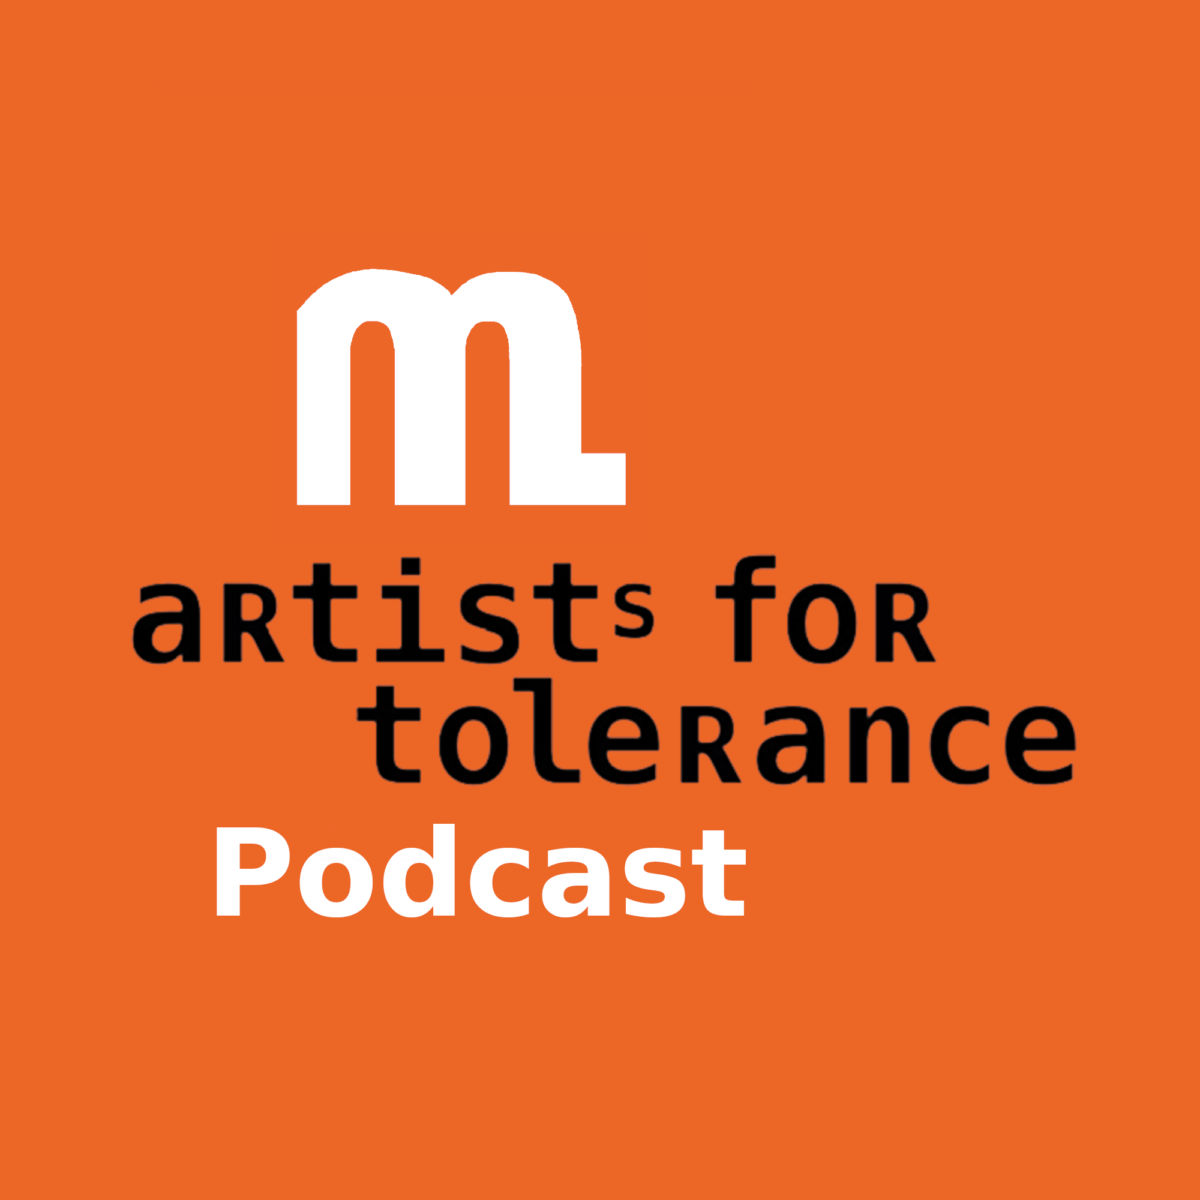 artists for tolerance